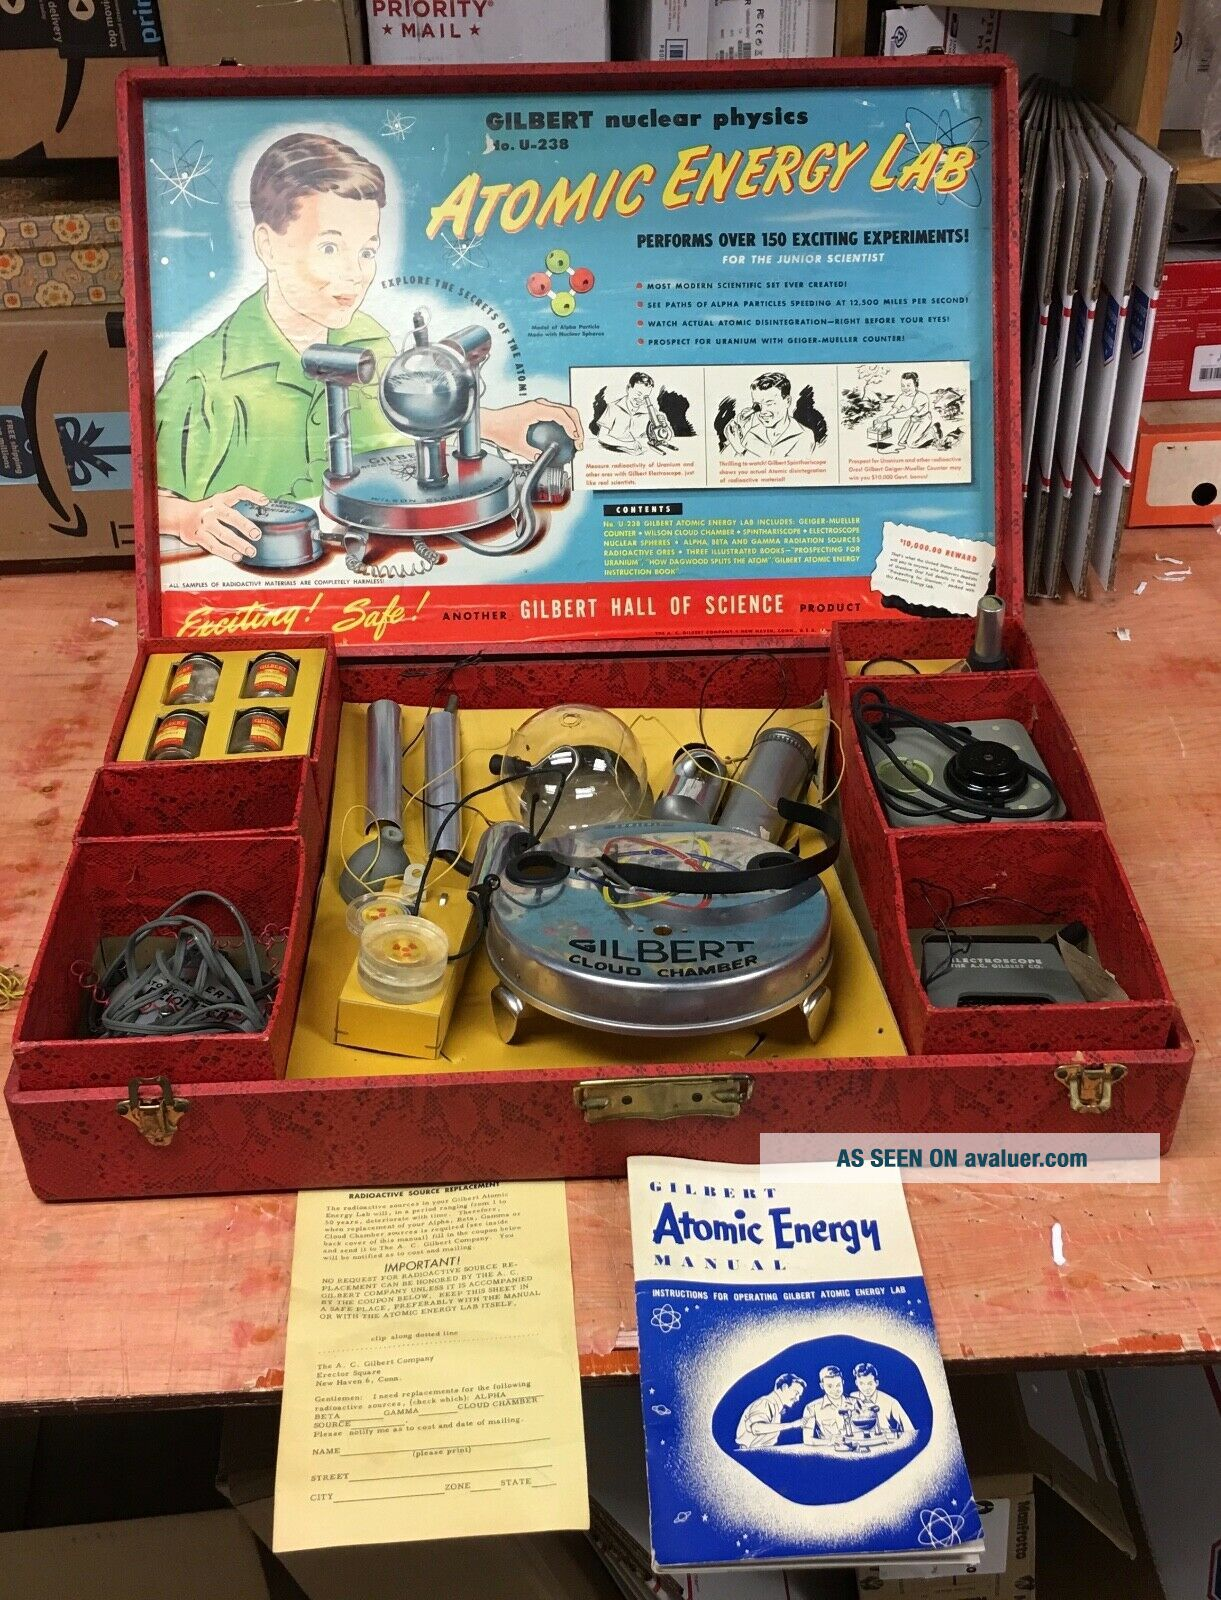 Rare Gilbert U - 238 Atomic Energy Lab toy with parts and case